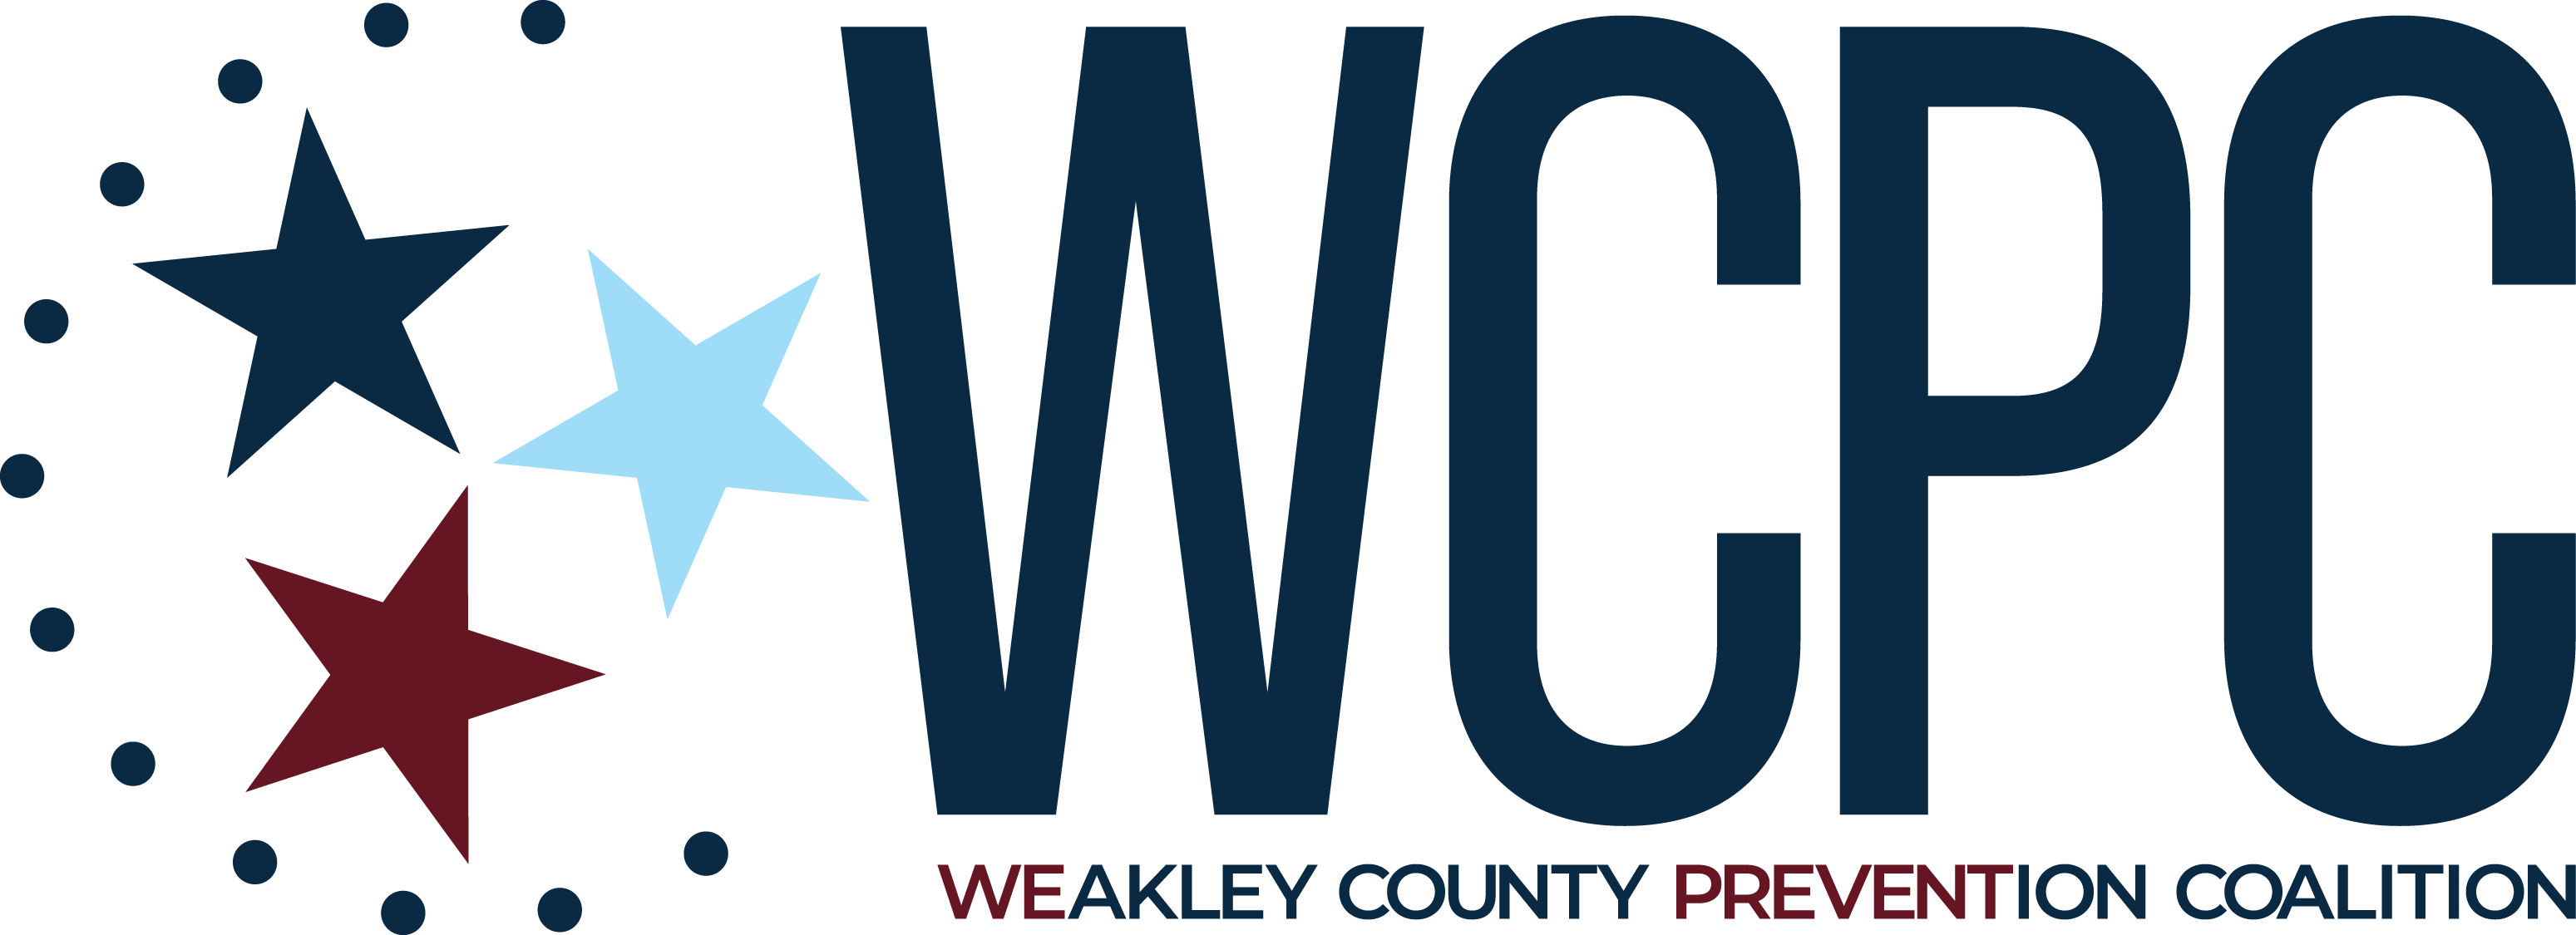 Weakley County Prevention